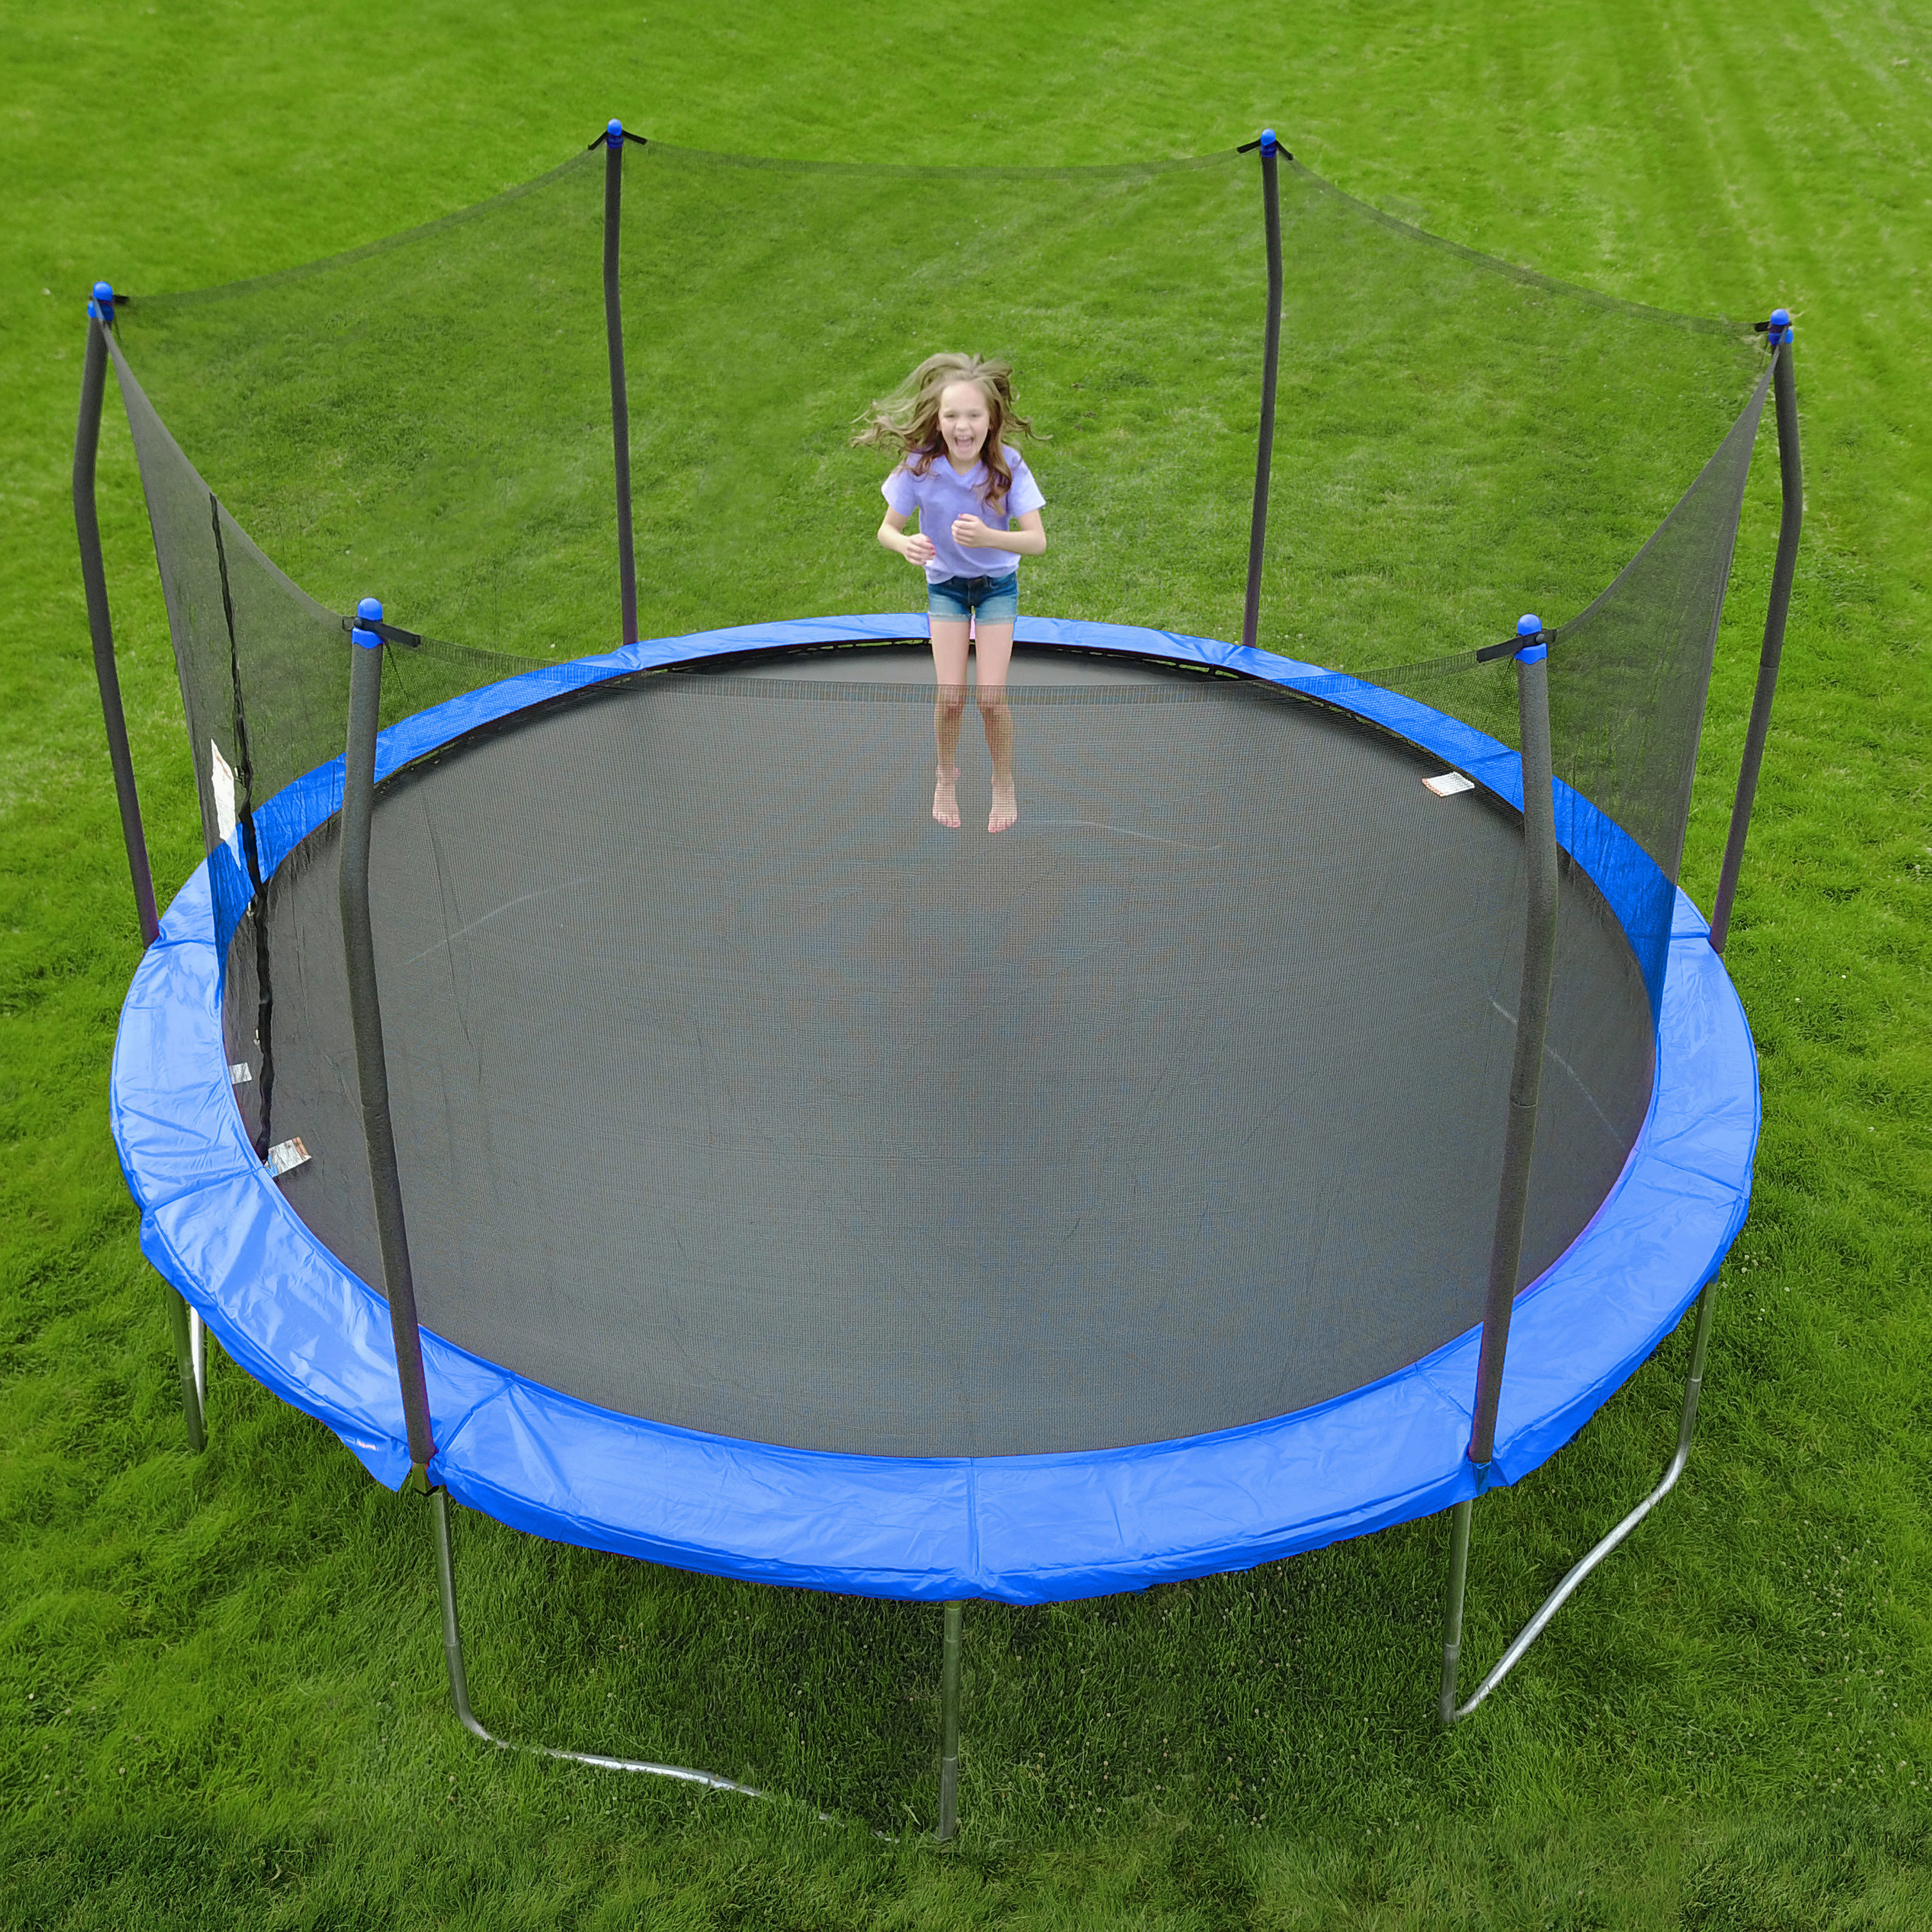 child jumping on a trampoline with a blue border and enclosure